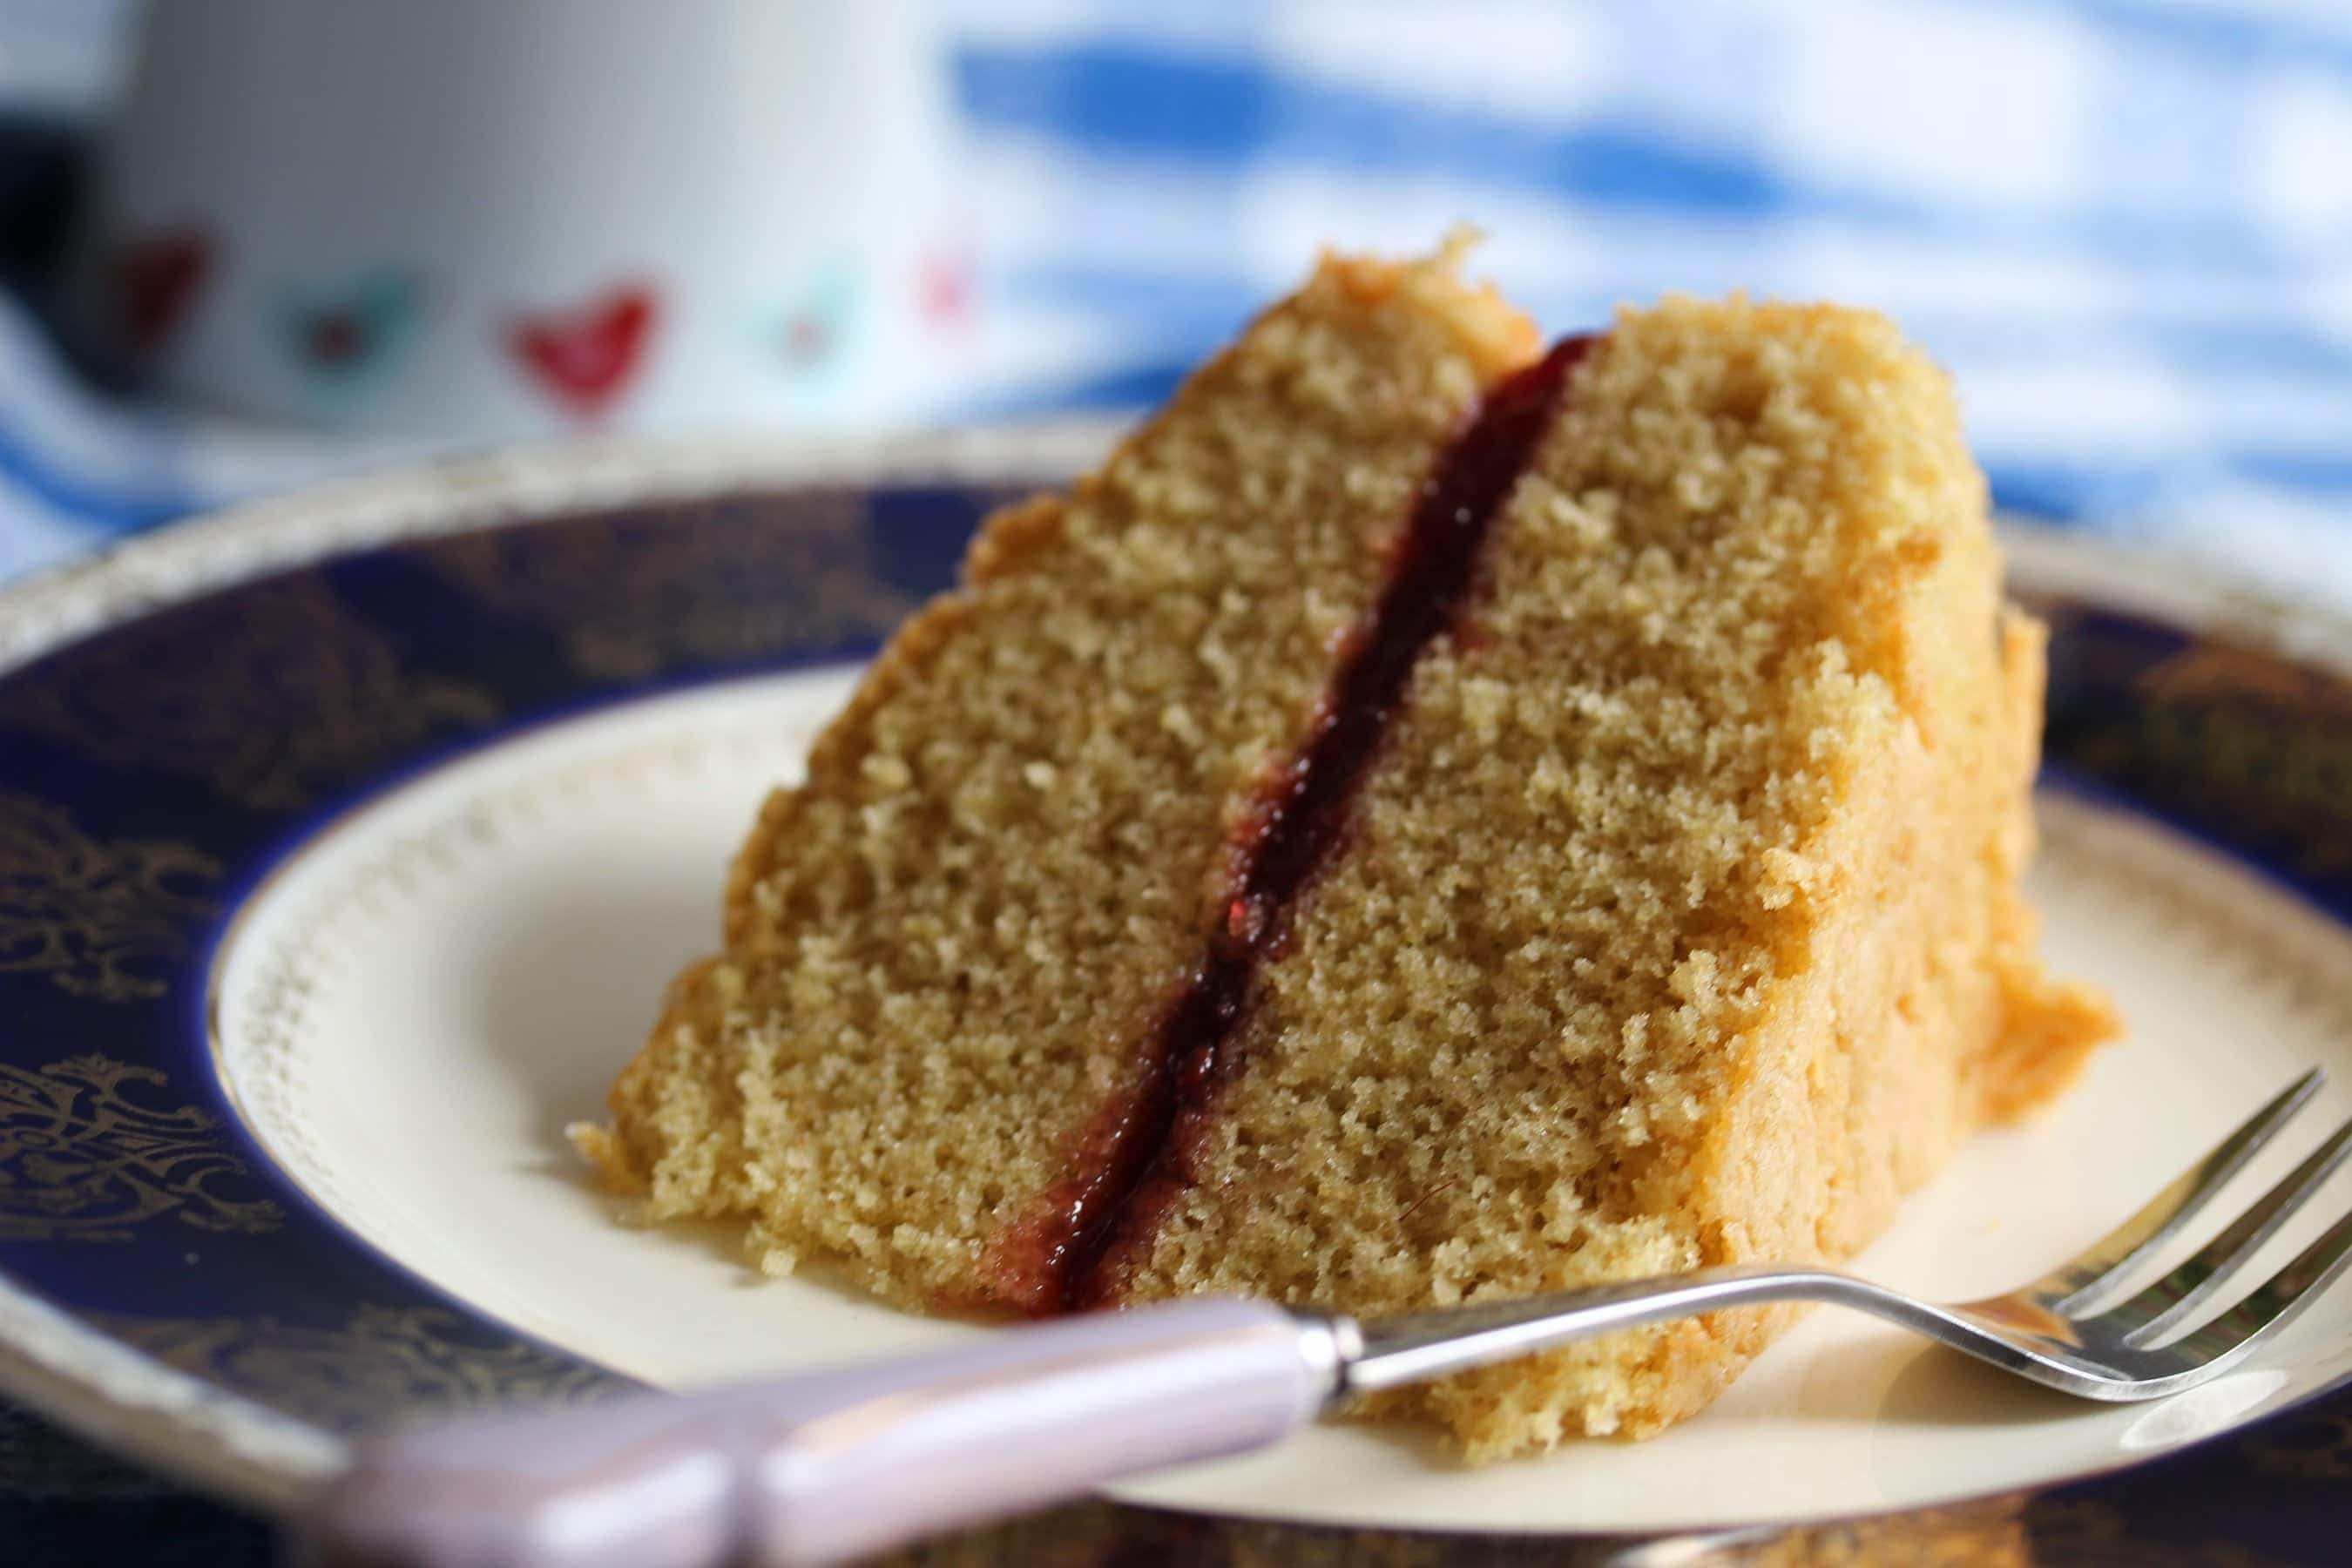 Fairy Cake Recipe Uk Plain Flour: What On Earth Is...A Gluten Free Flour Blend?